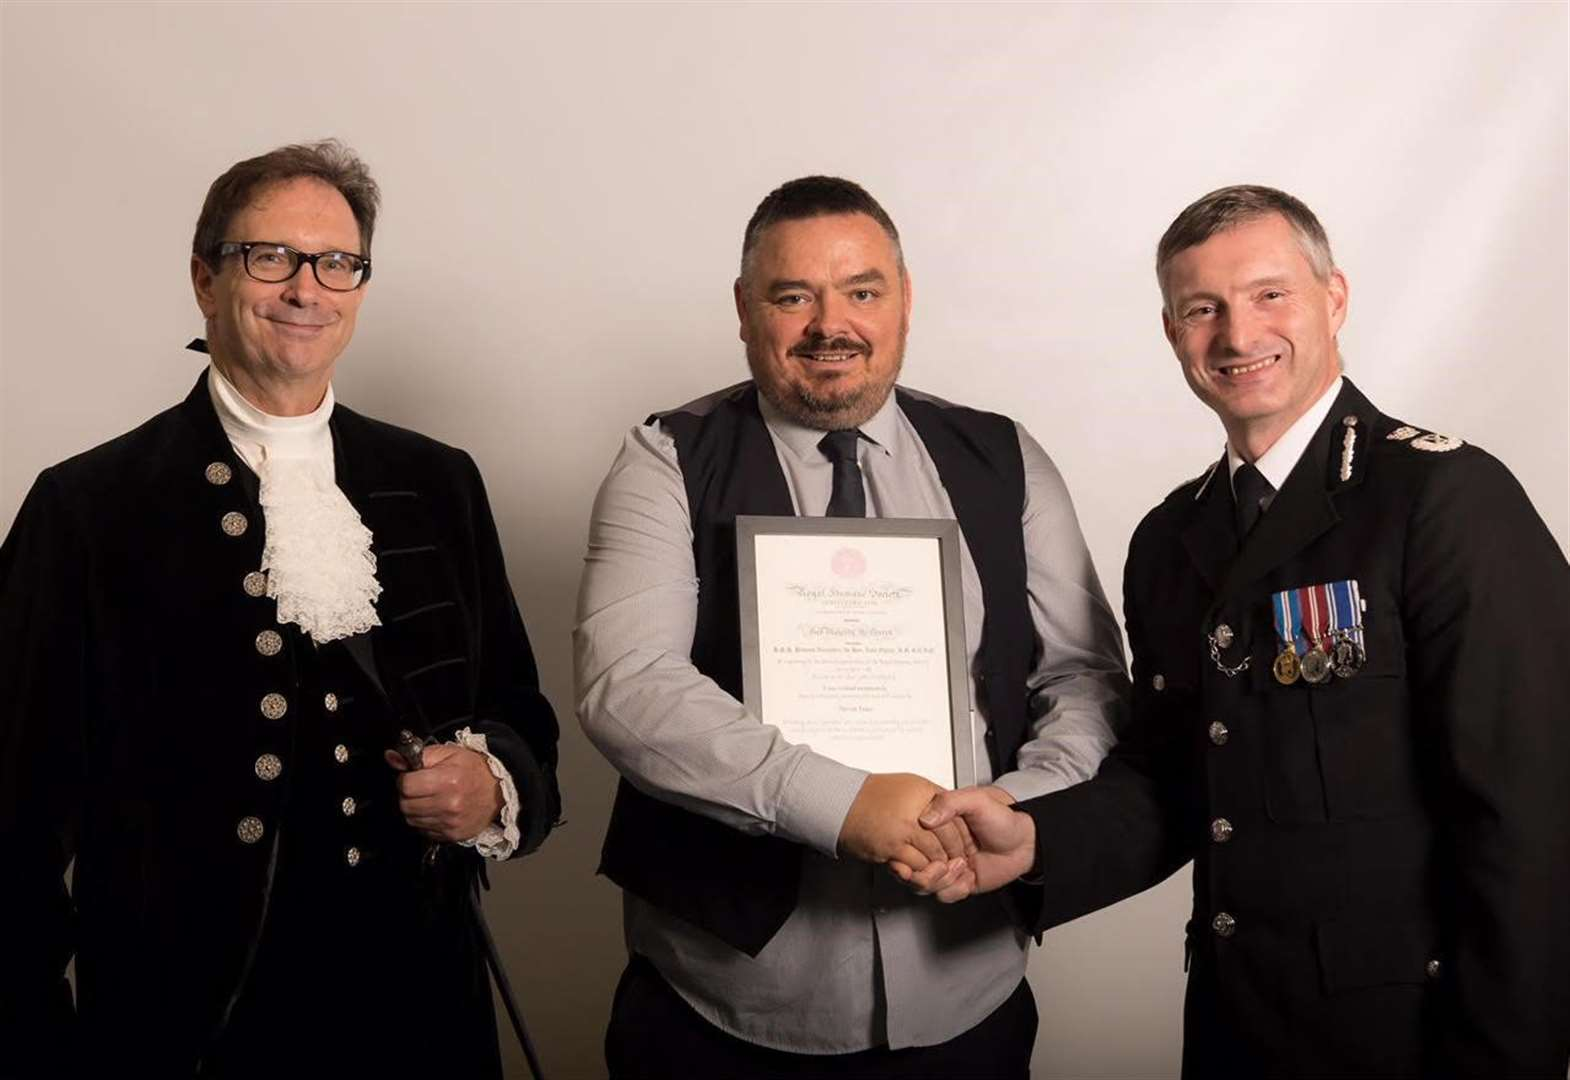 Award for hero lorry driver